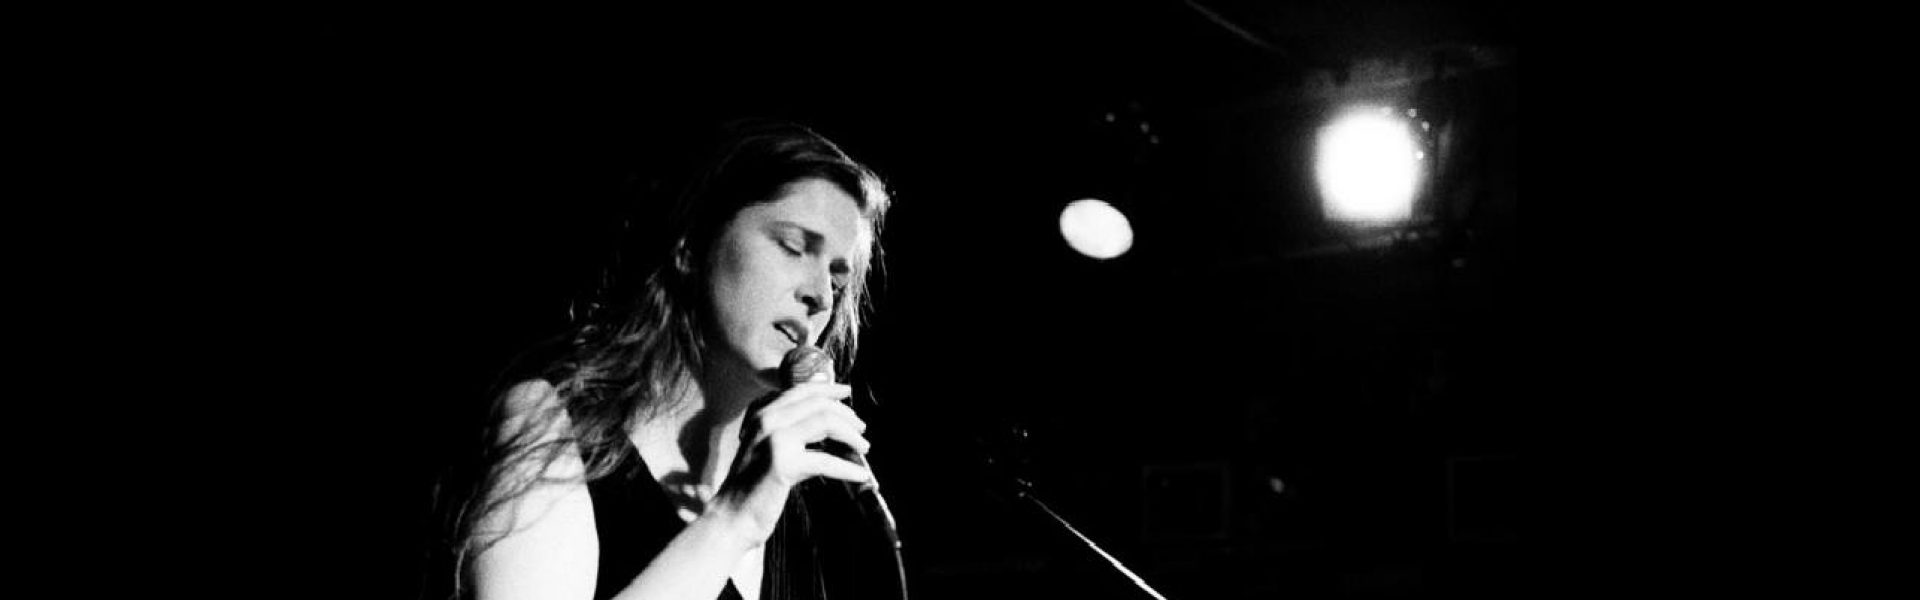 Singing Lessons in NYC with Eleonor England (Online Voice Lessons too!)